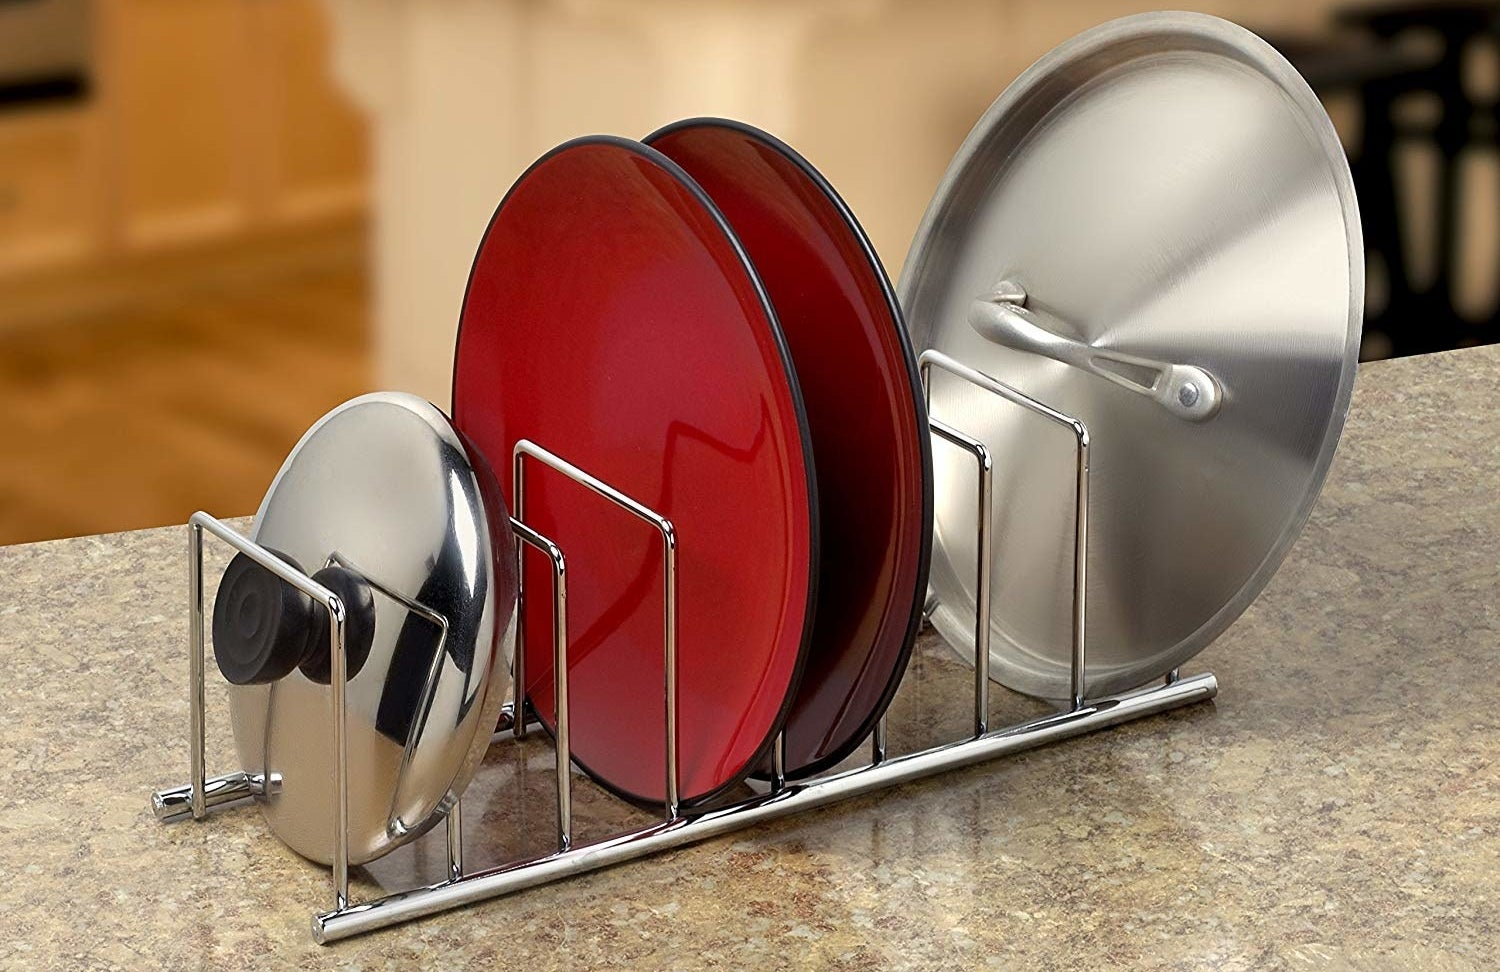 plates and pan lids in the rack